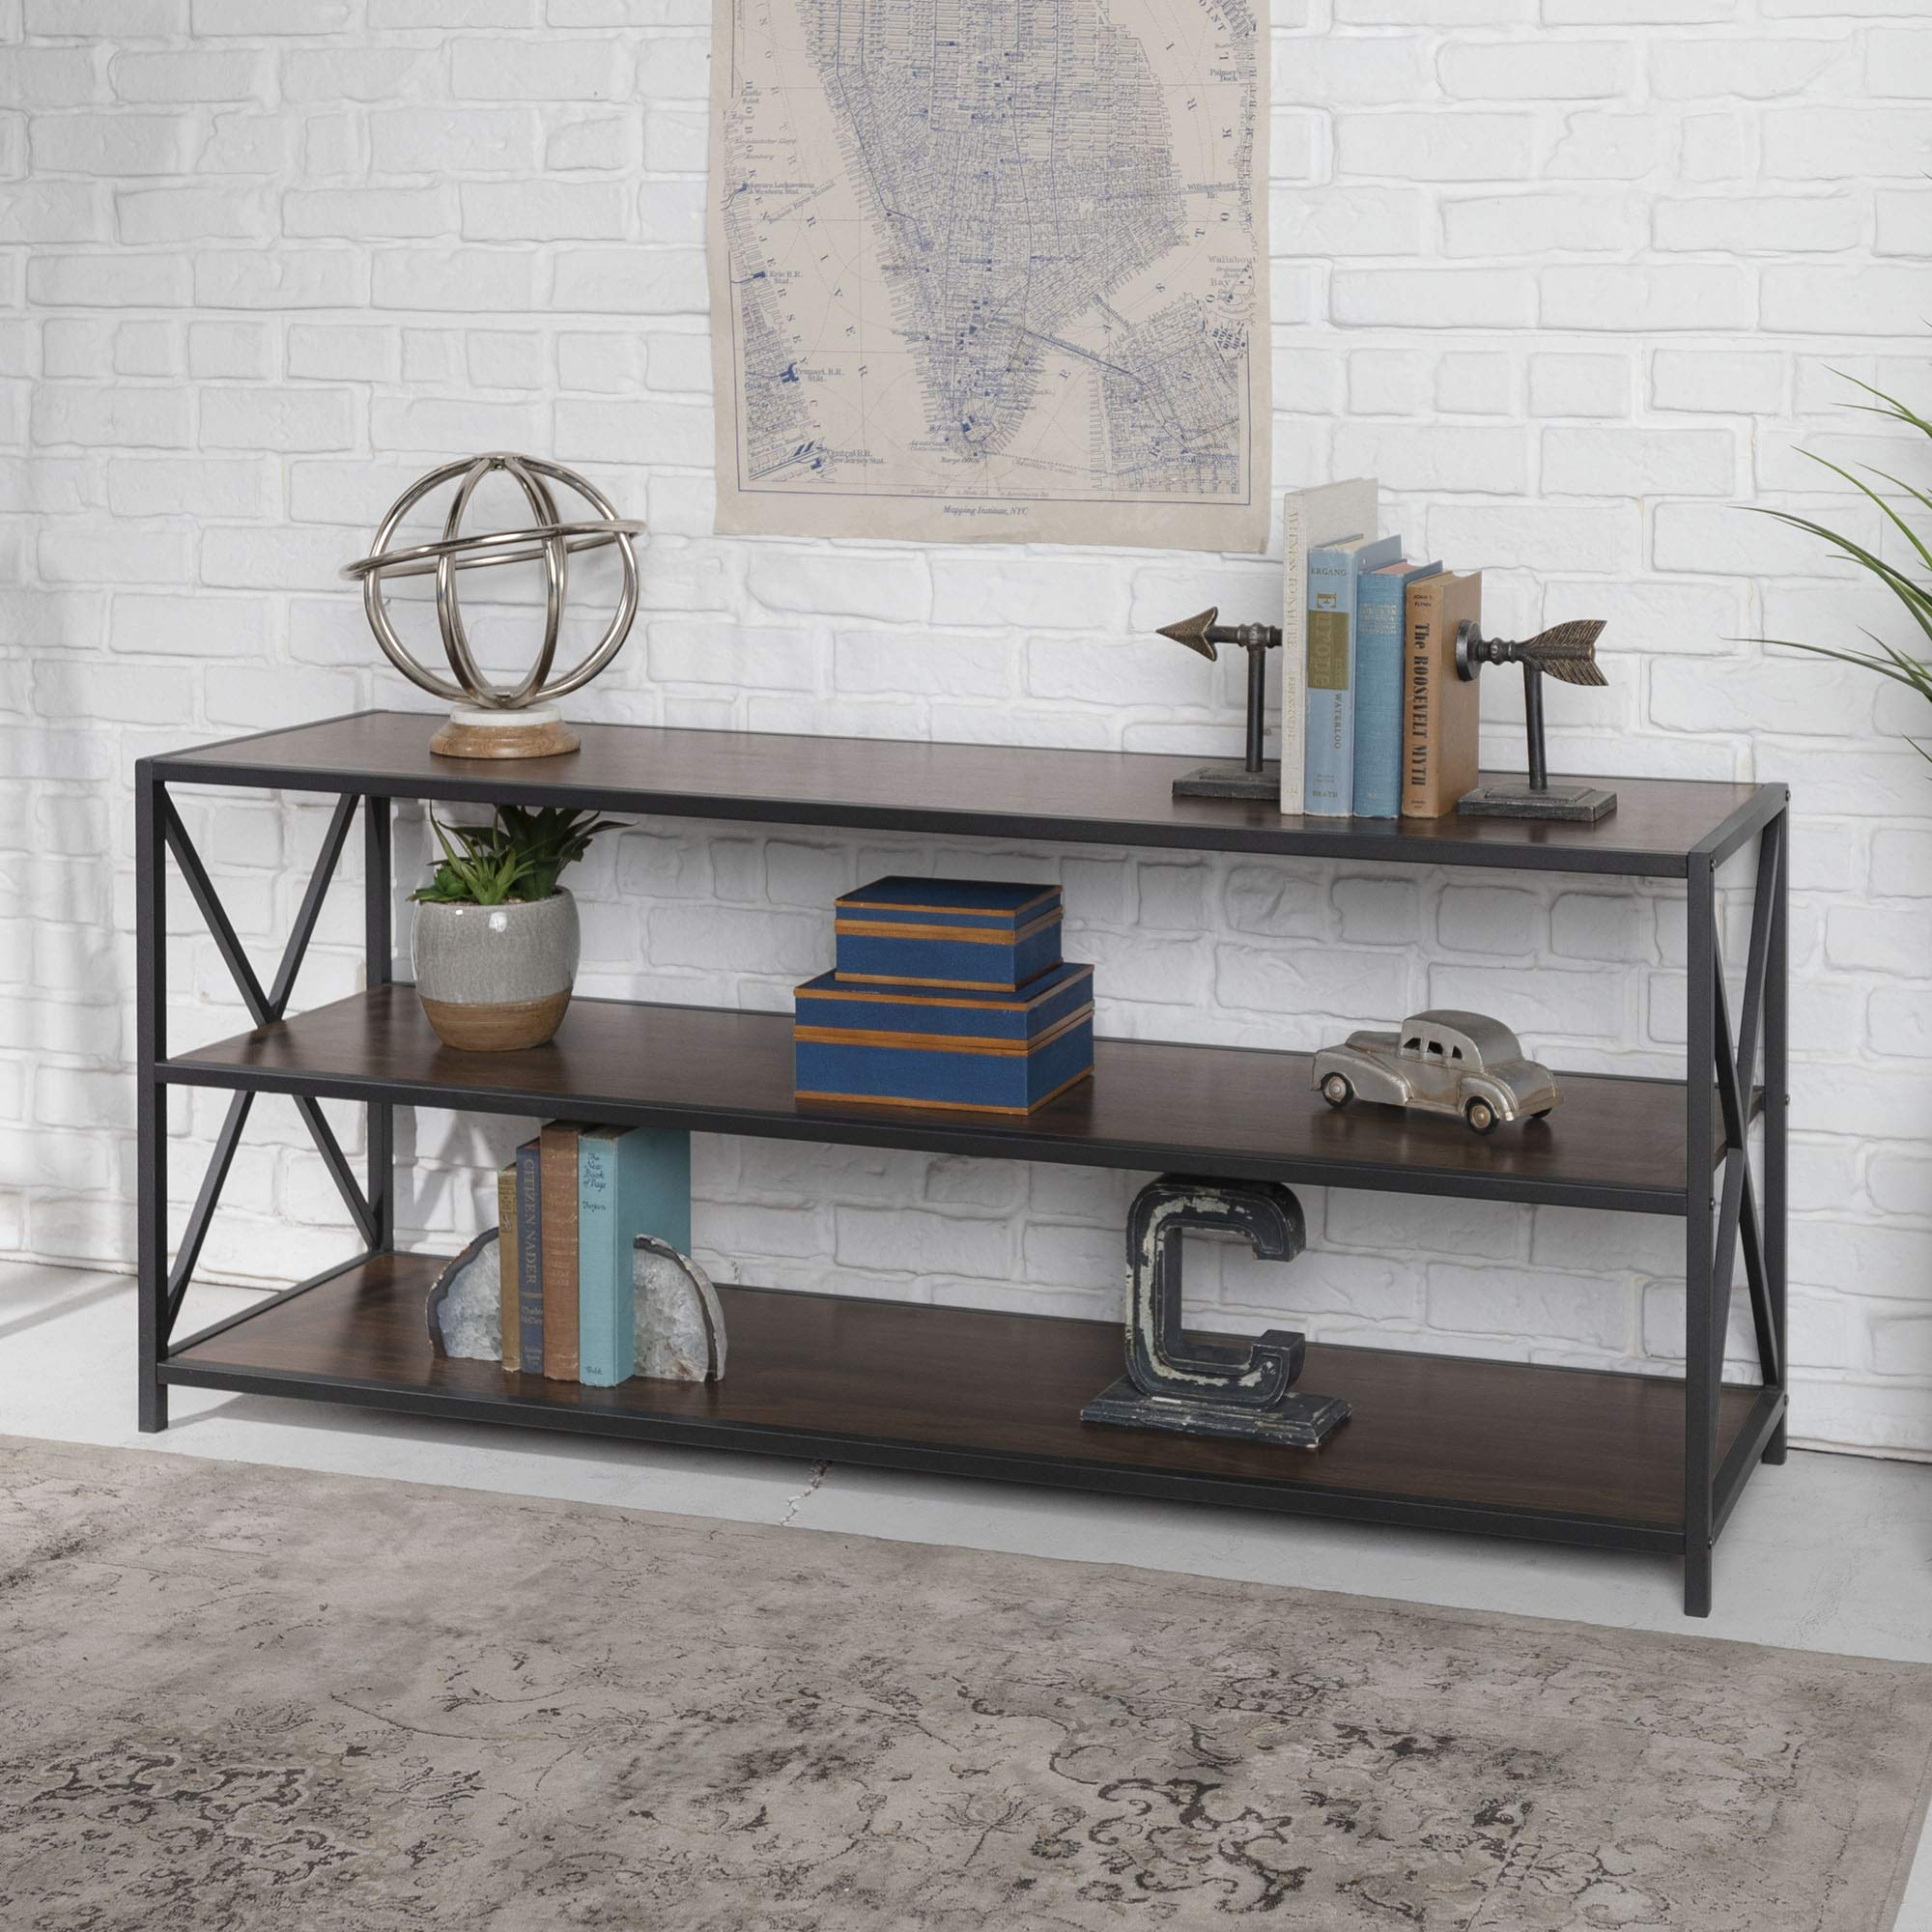 WE Furniture AZS60XMWDW 2 Shelf Industrial Wood Metal Bookcase Bookshelf Storage, 60 Inch, Walnut Brown by WE Furniture